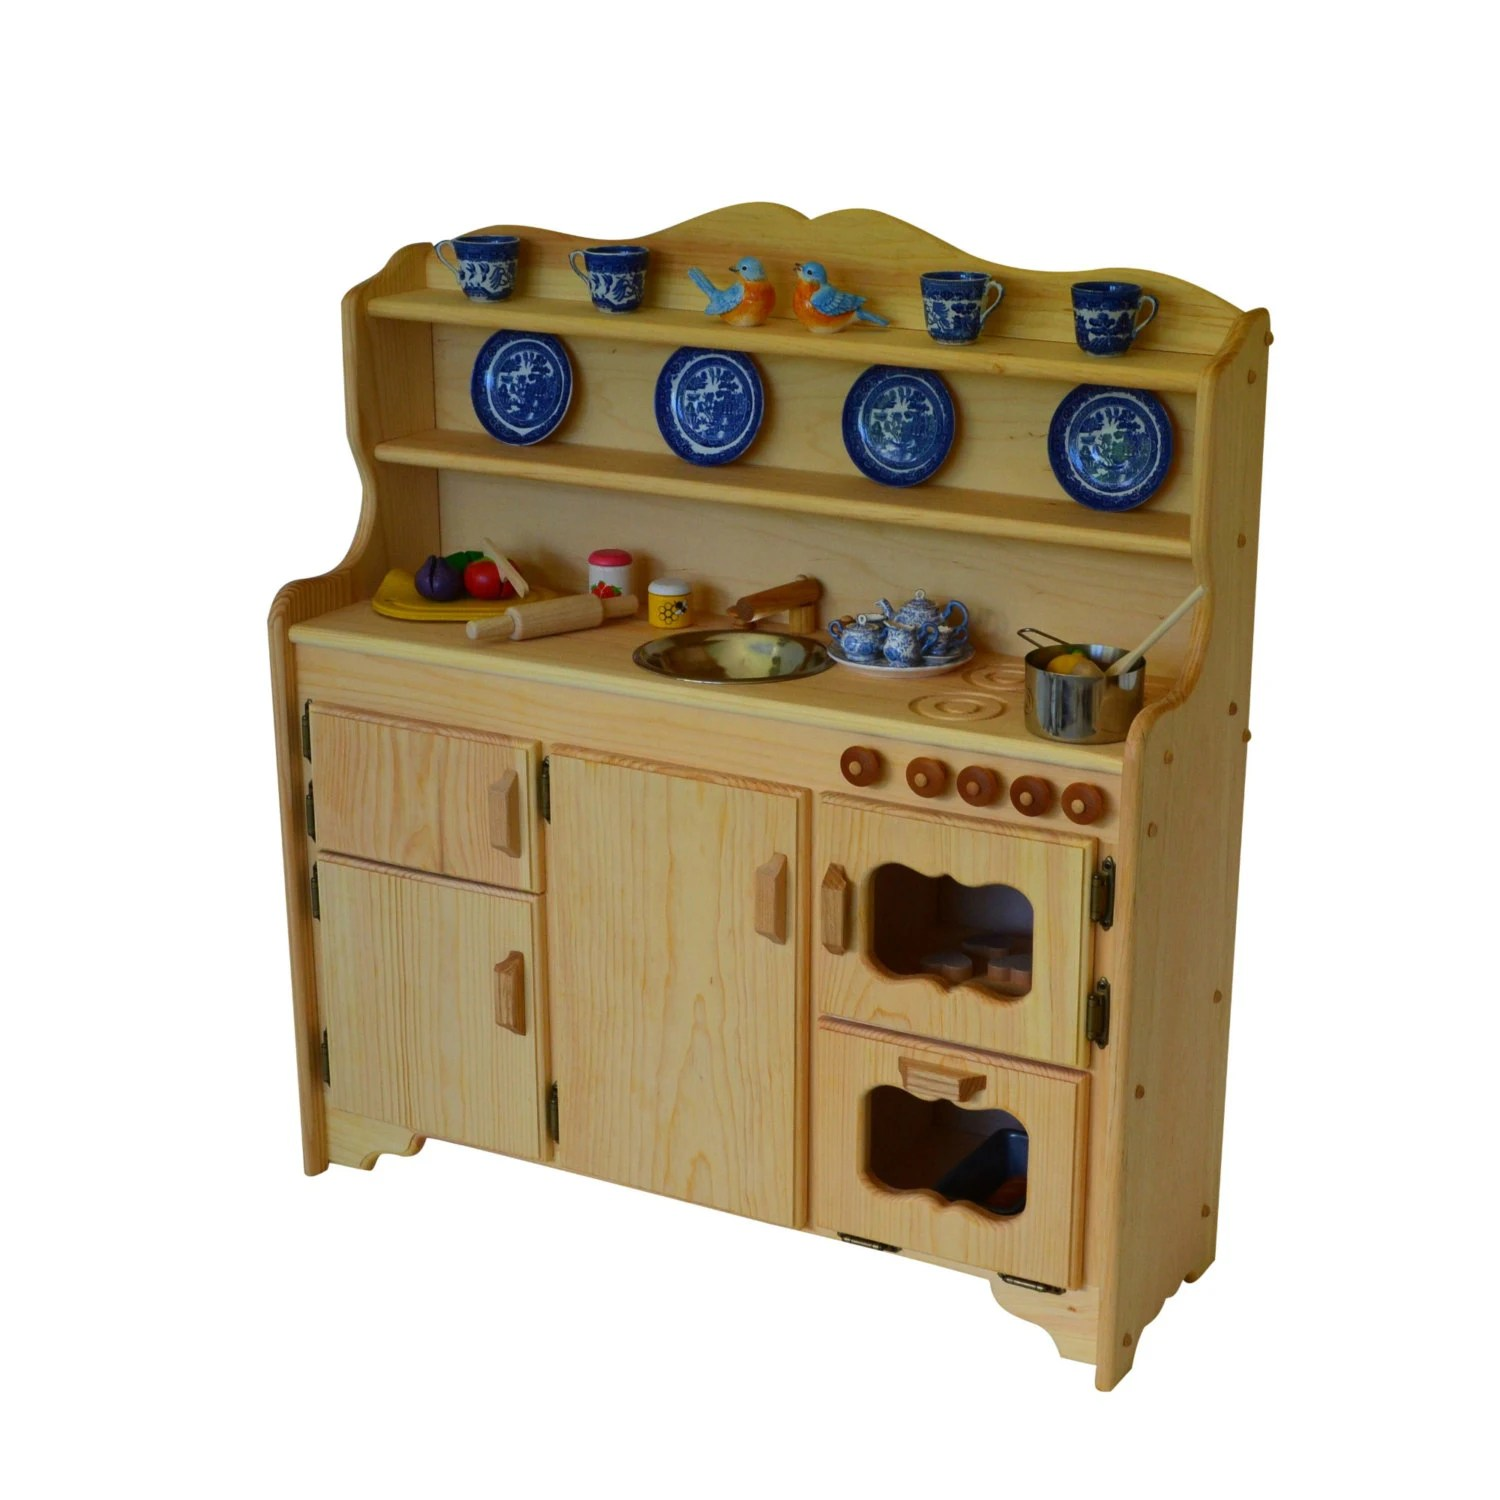 wooden toy kitchen remodelling waldorf play stove etsy image 0